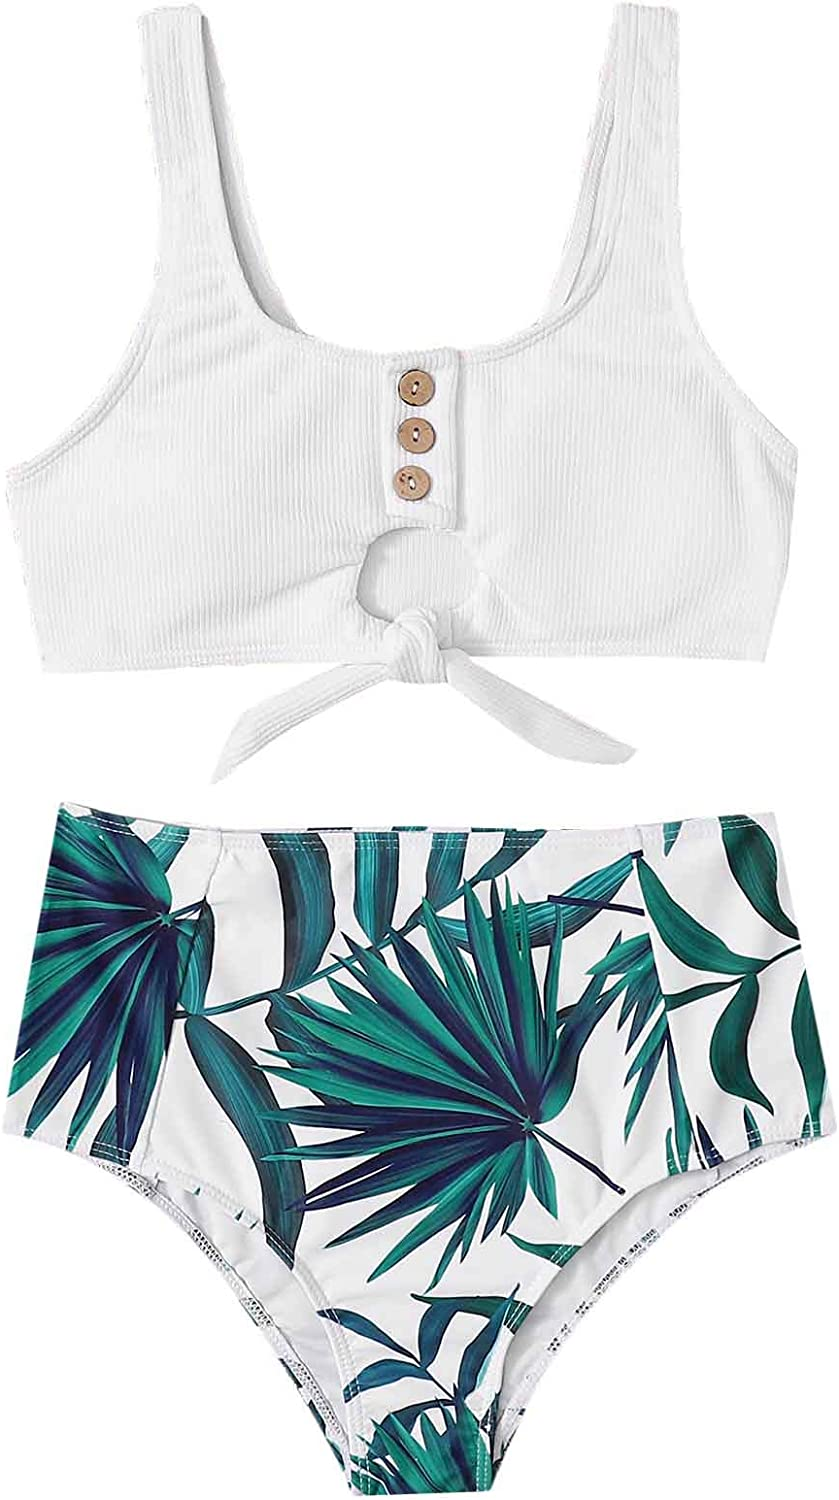 SOLY HUX Women's Knot Hem Top with High Waist Ruched Panty Two Piece Swimsuits Bathing Suits White Tropical M